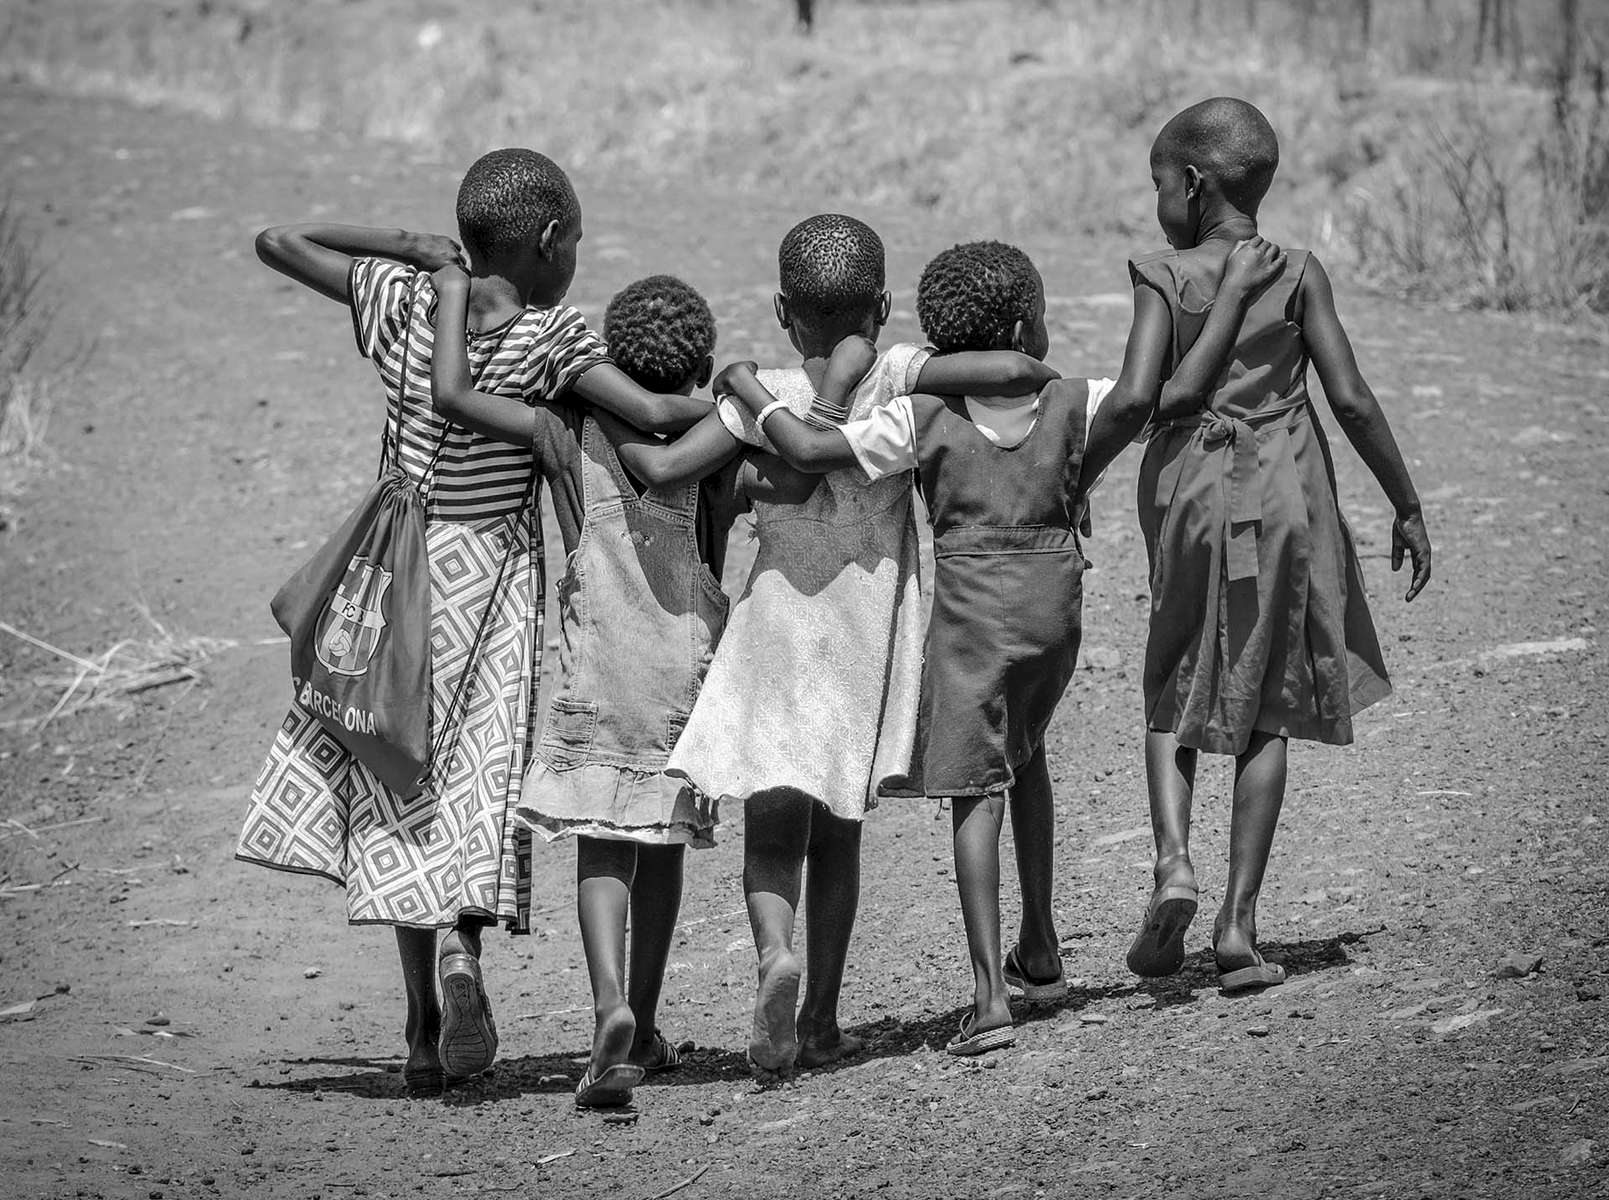 Refugee children walk home together after school in Nyumanzi refugee settlement on 2 March, 2017. With thousands of new arrivals fleeing to Uganda every day, South Sudan is now Africa's largest refugee crisis and the world's third after Syria and Afghanistan – with less attention and chronic levels of underfunding.